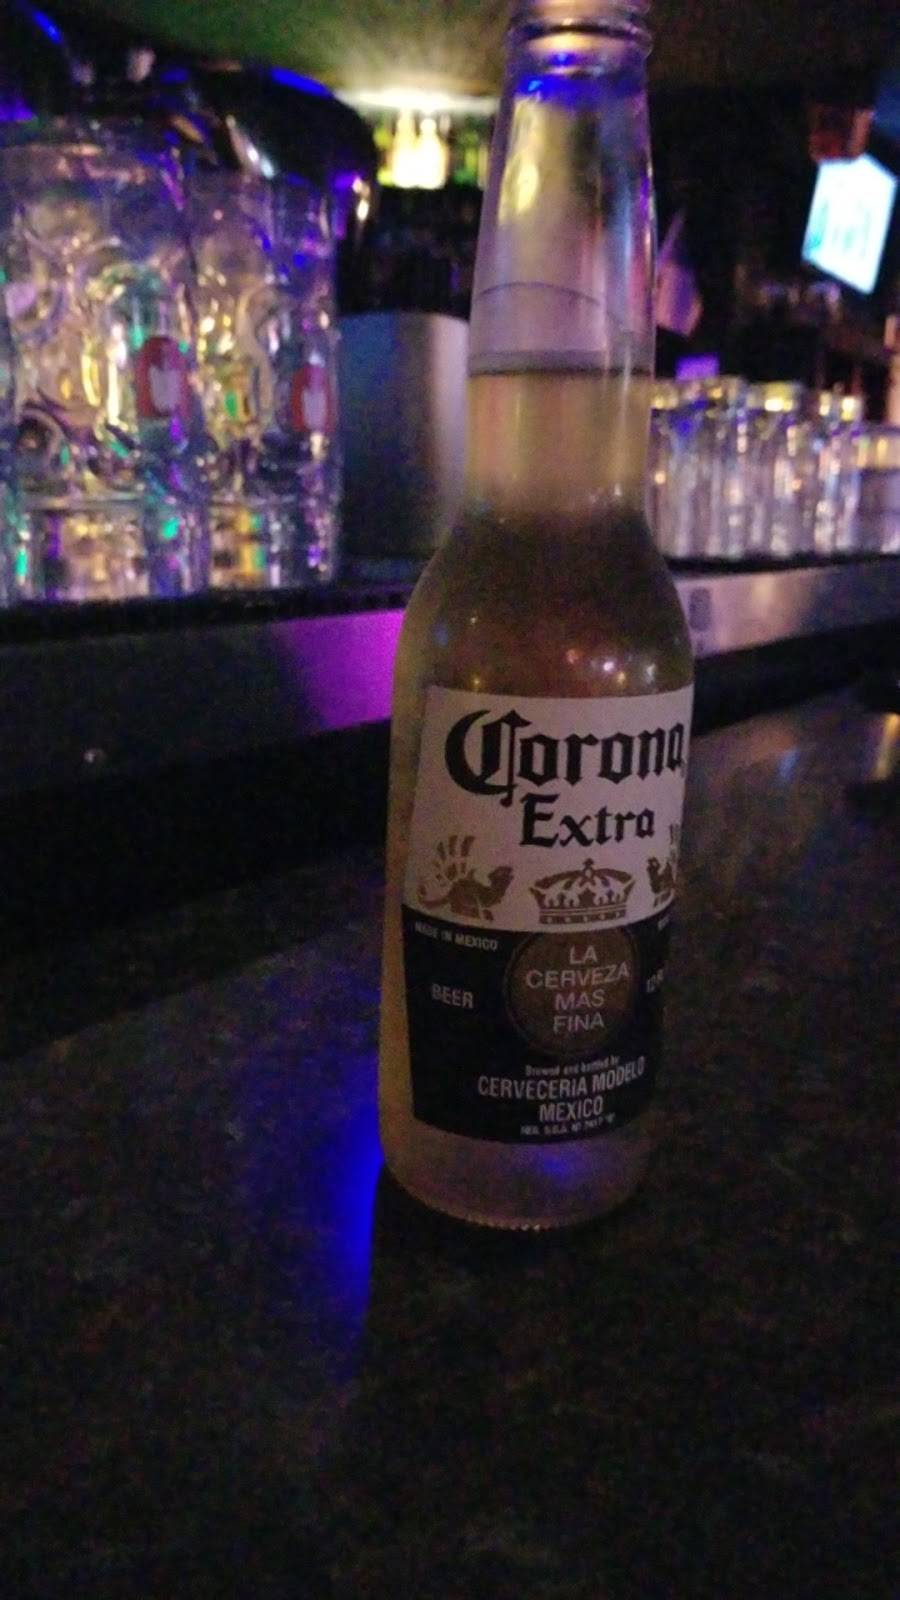 Bottoms up Bar and Grill   restaurant   8595 Katella Ave, Stanton, CA 90680, USA   7148288595 OR +1 714-828-8595